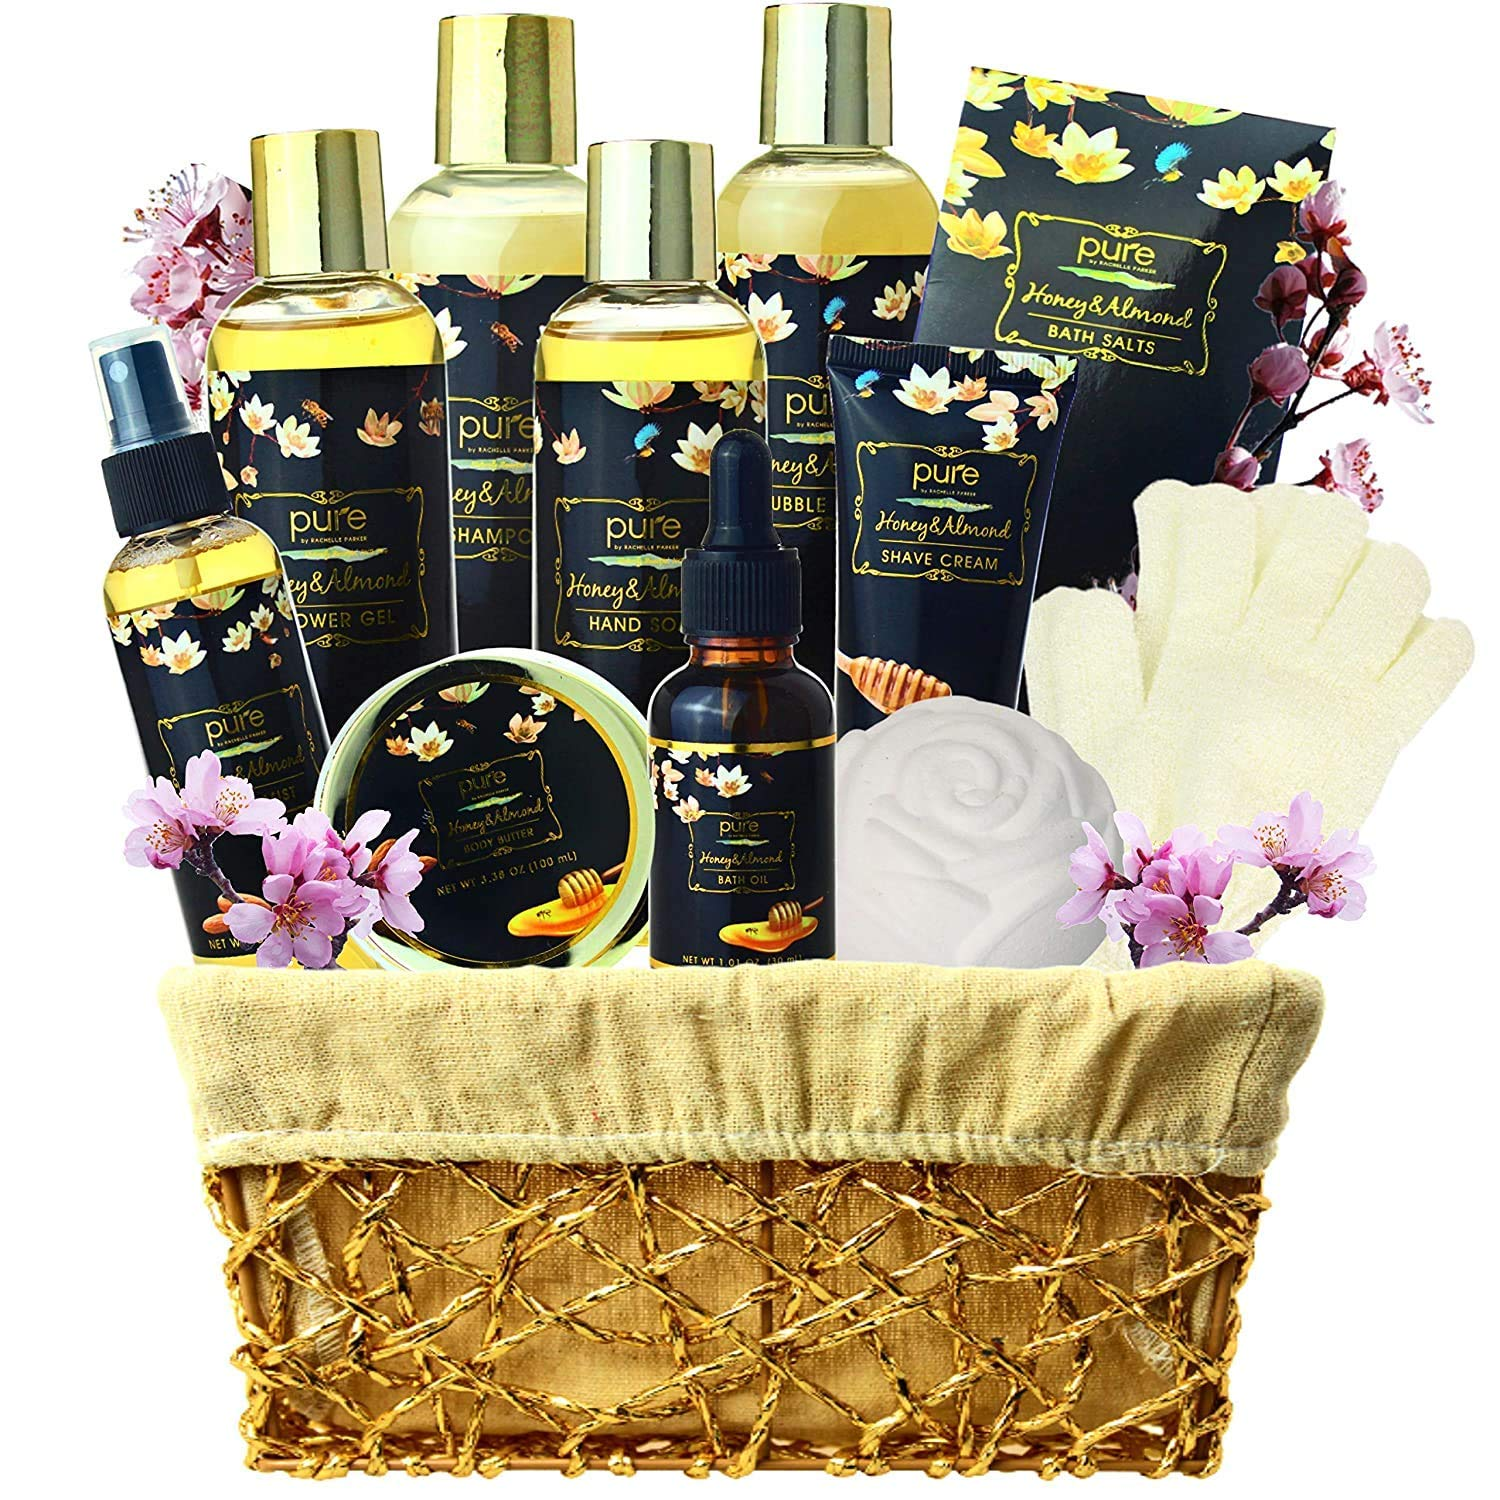 Premium XL Spa Gift Basket for Men & Women! Pampering Honey Almond Spa Gift Set Natural Bath Gift Set. Includes Bubble Bath, Body Lotion, Bath Bombs and More! (Almond Milk & Honey)